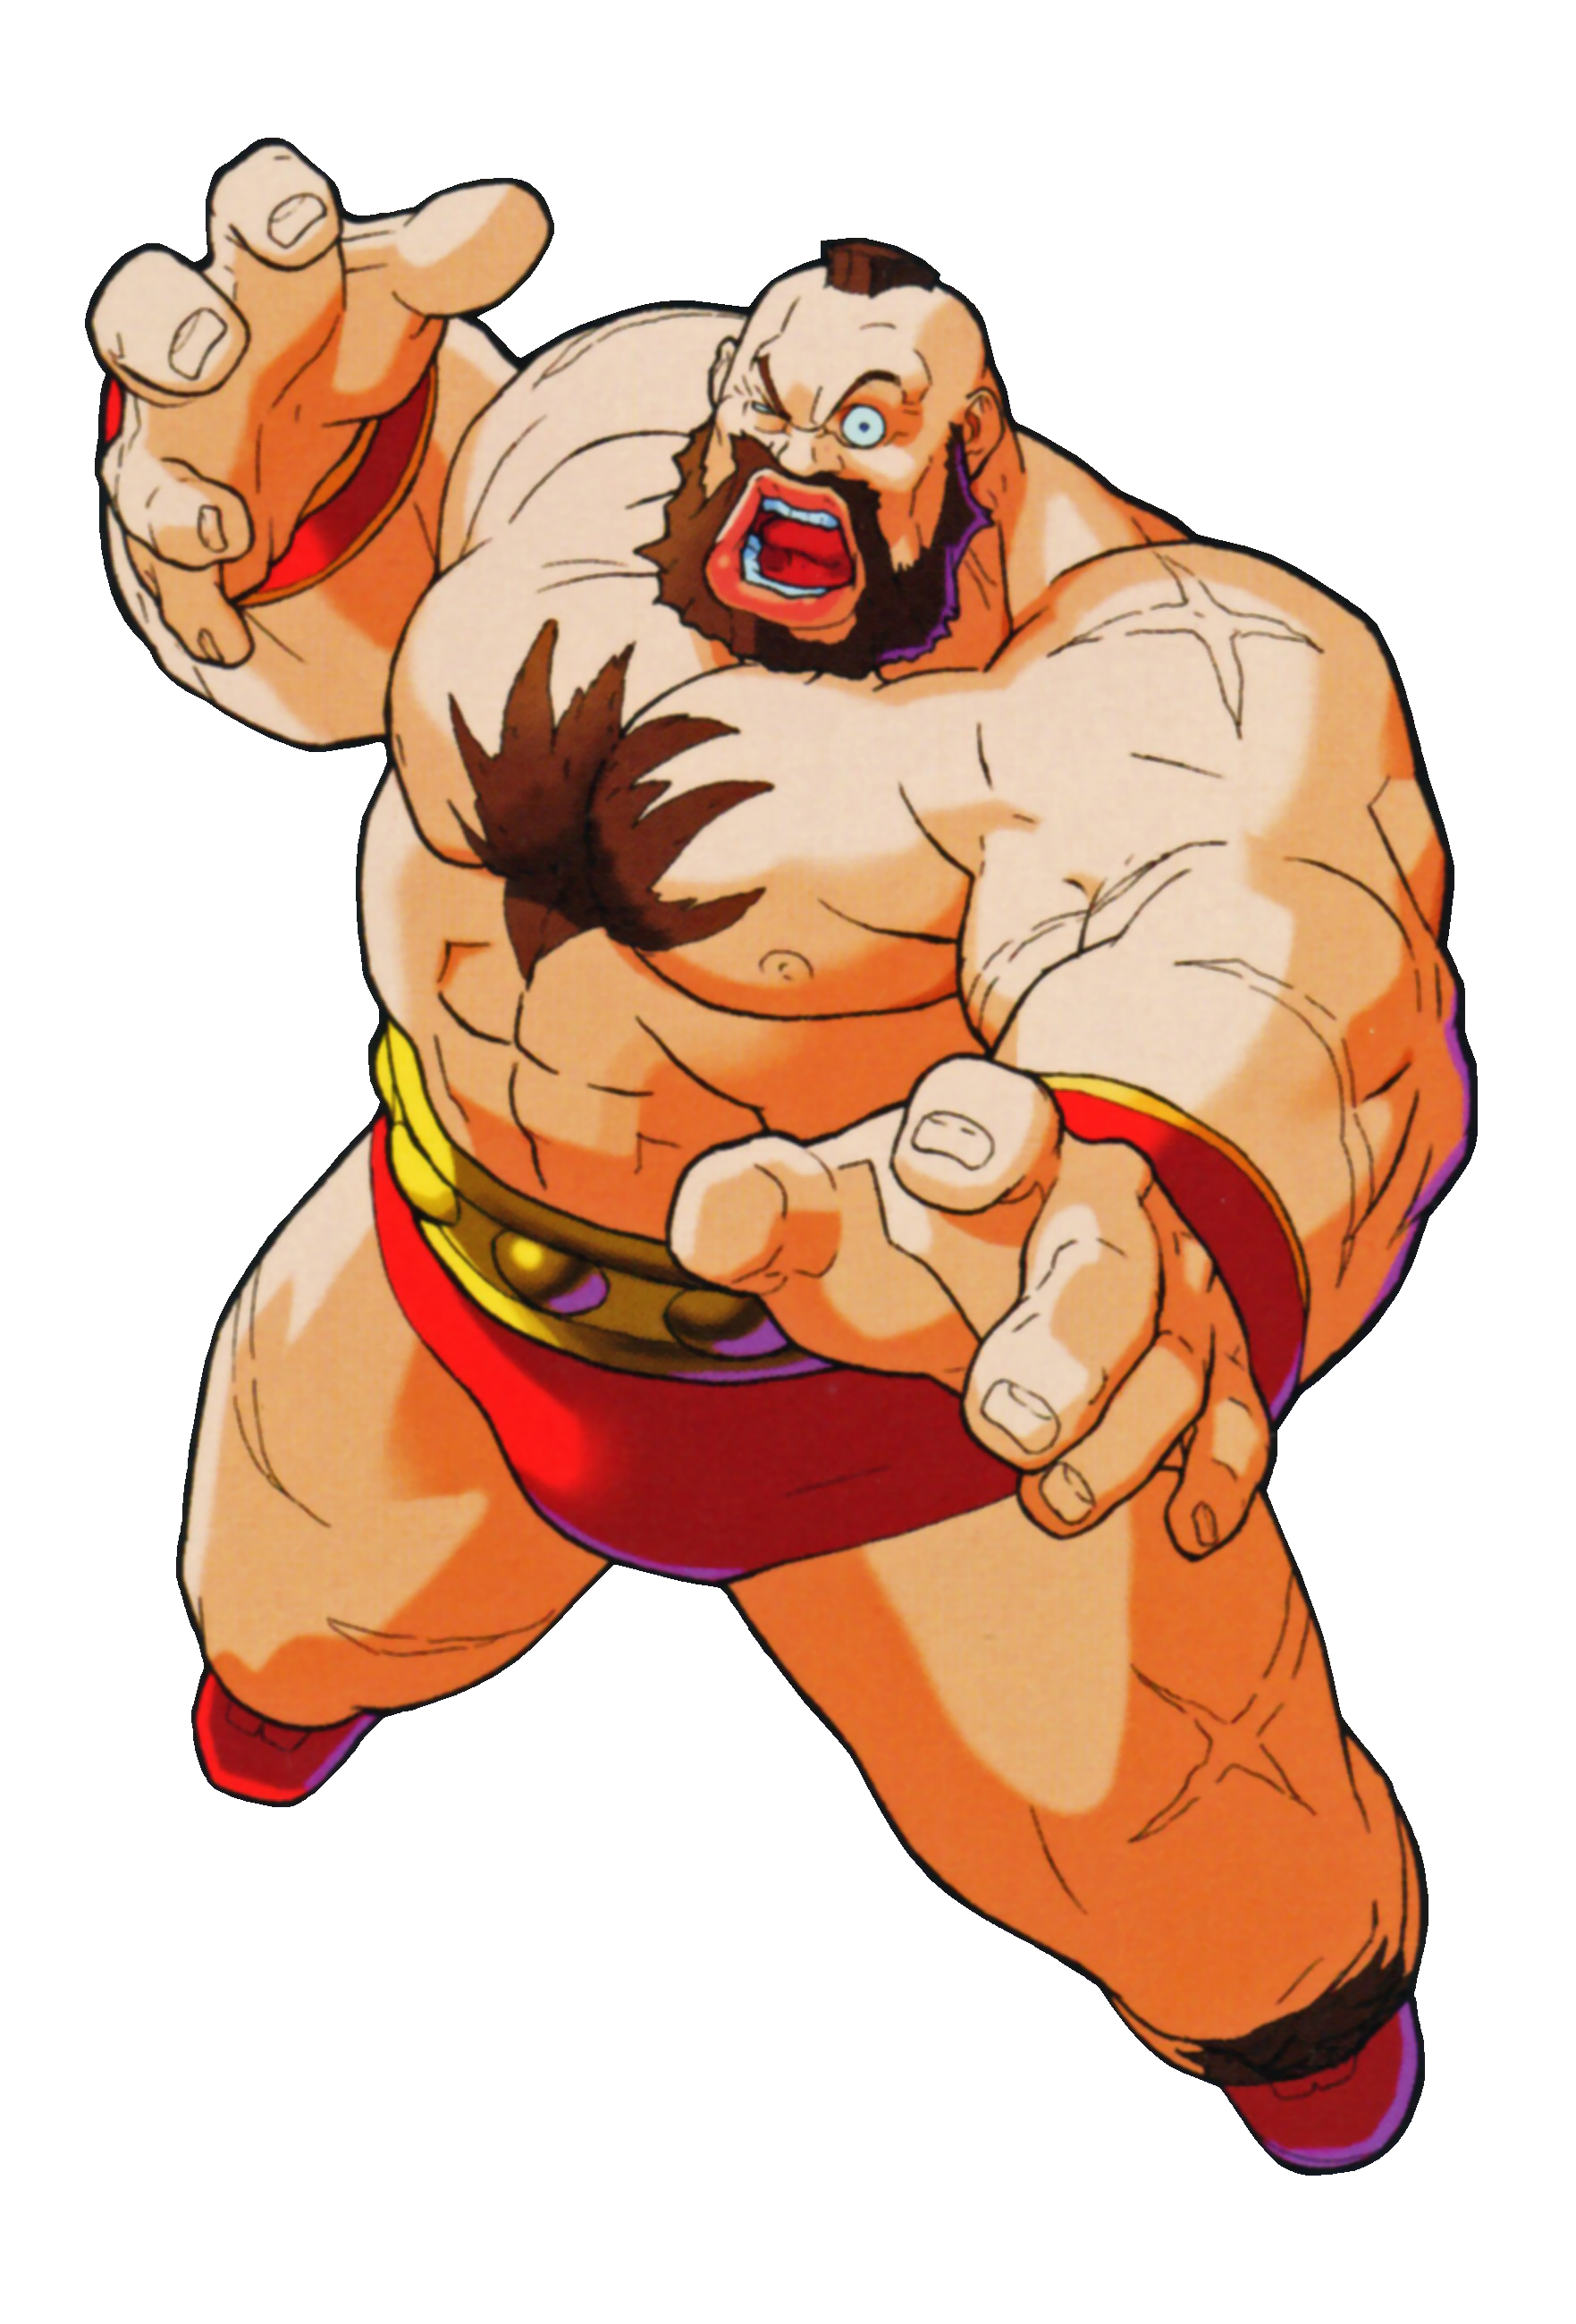 Image Street Fighter Zangief As He Appears In Marvel